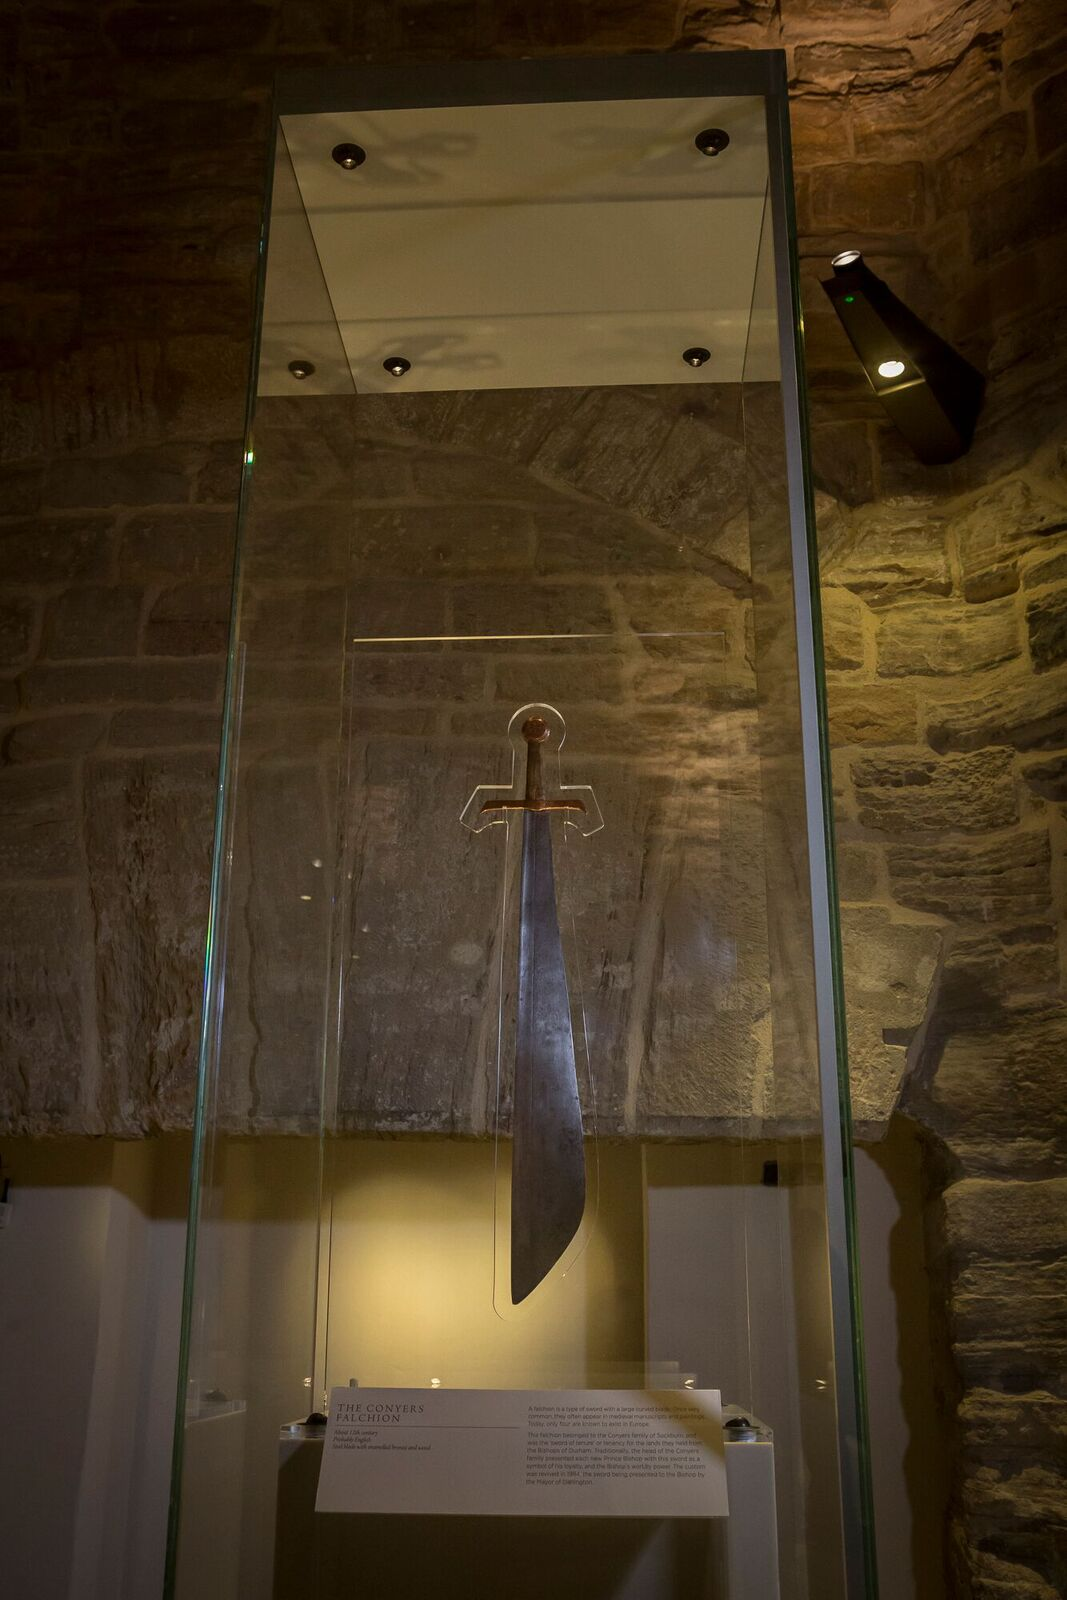 The Conyers flachion, a medieval sword used in a ceremony for newly appointed Bishops of Durham is another highlight of the exhibition.